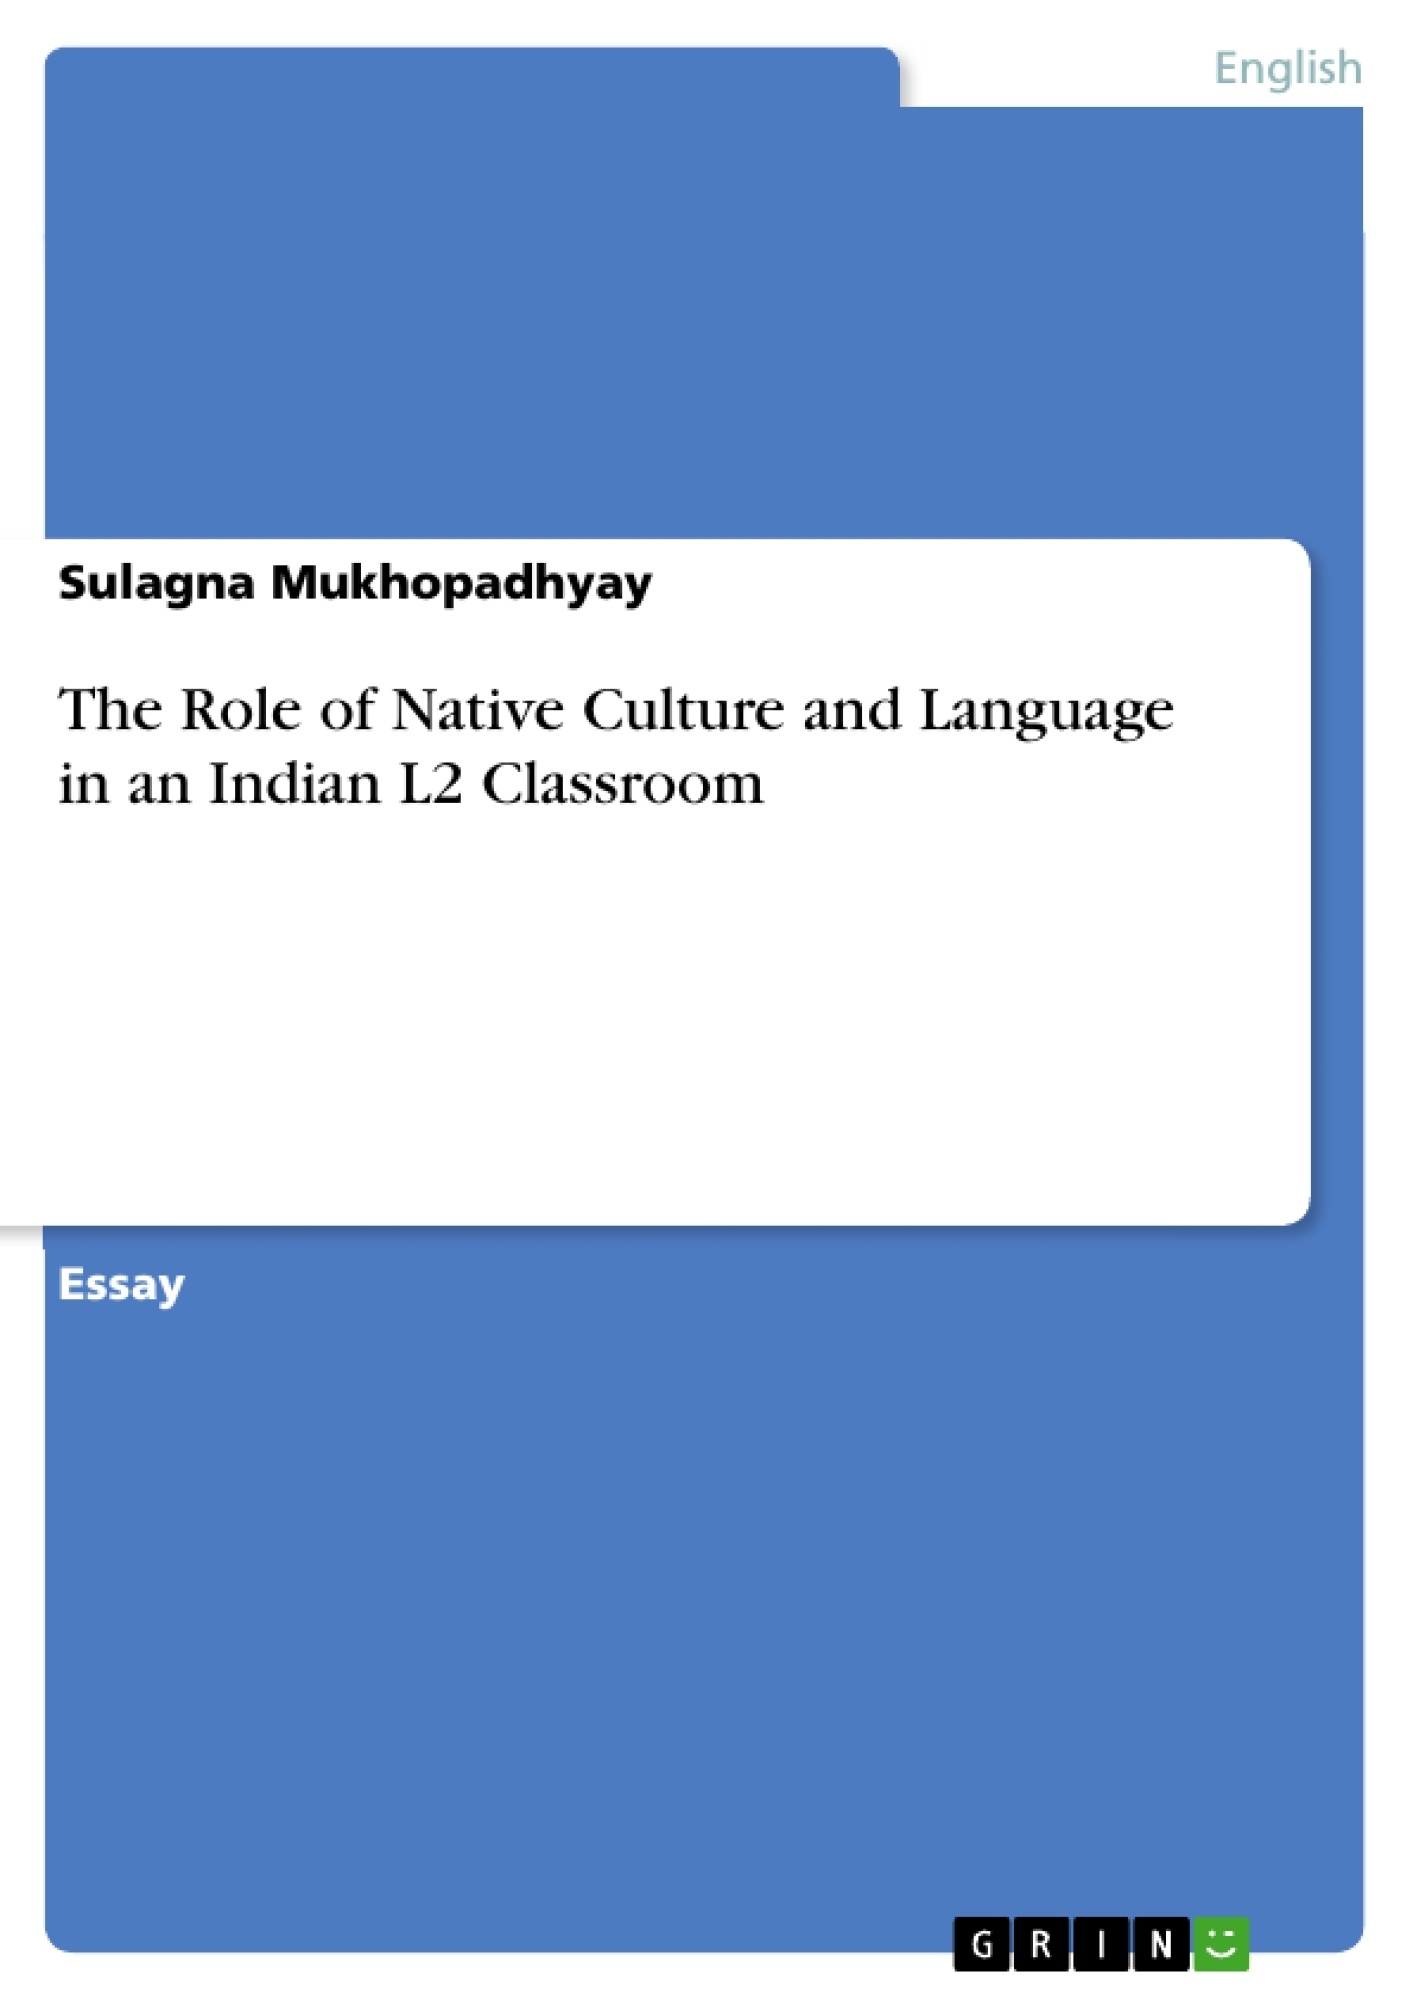 n culture essay the role of native culture and language in an  the role of native culture and language in an n l classroom the role of native culture culture experience essay